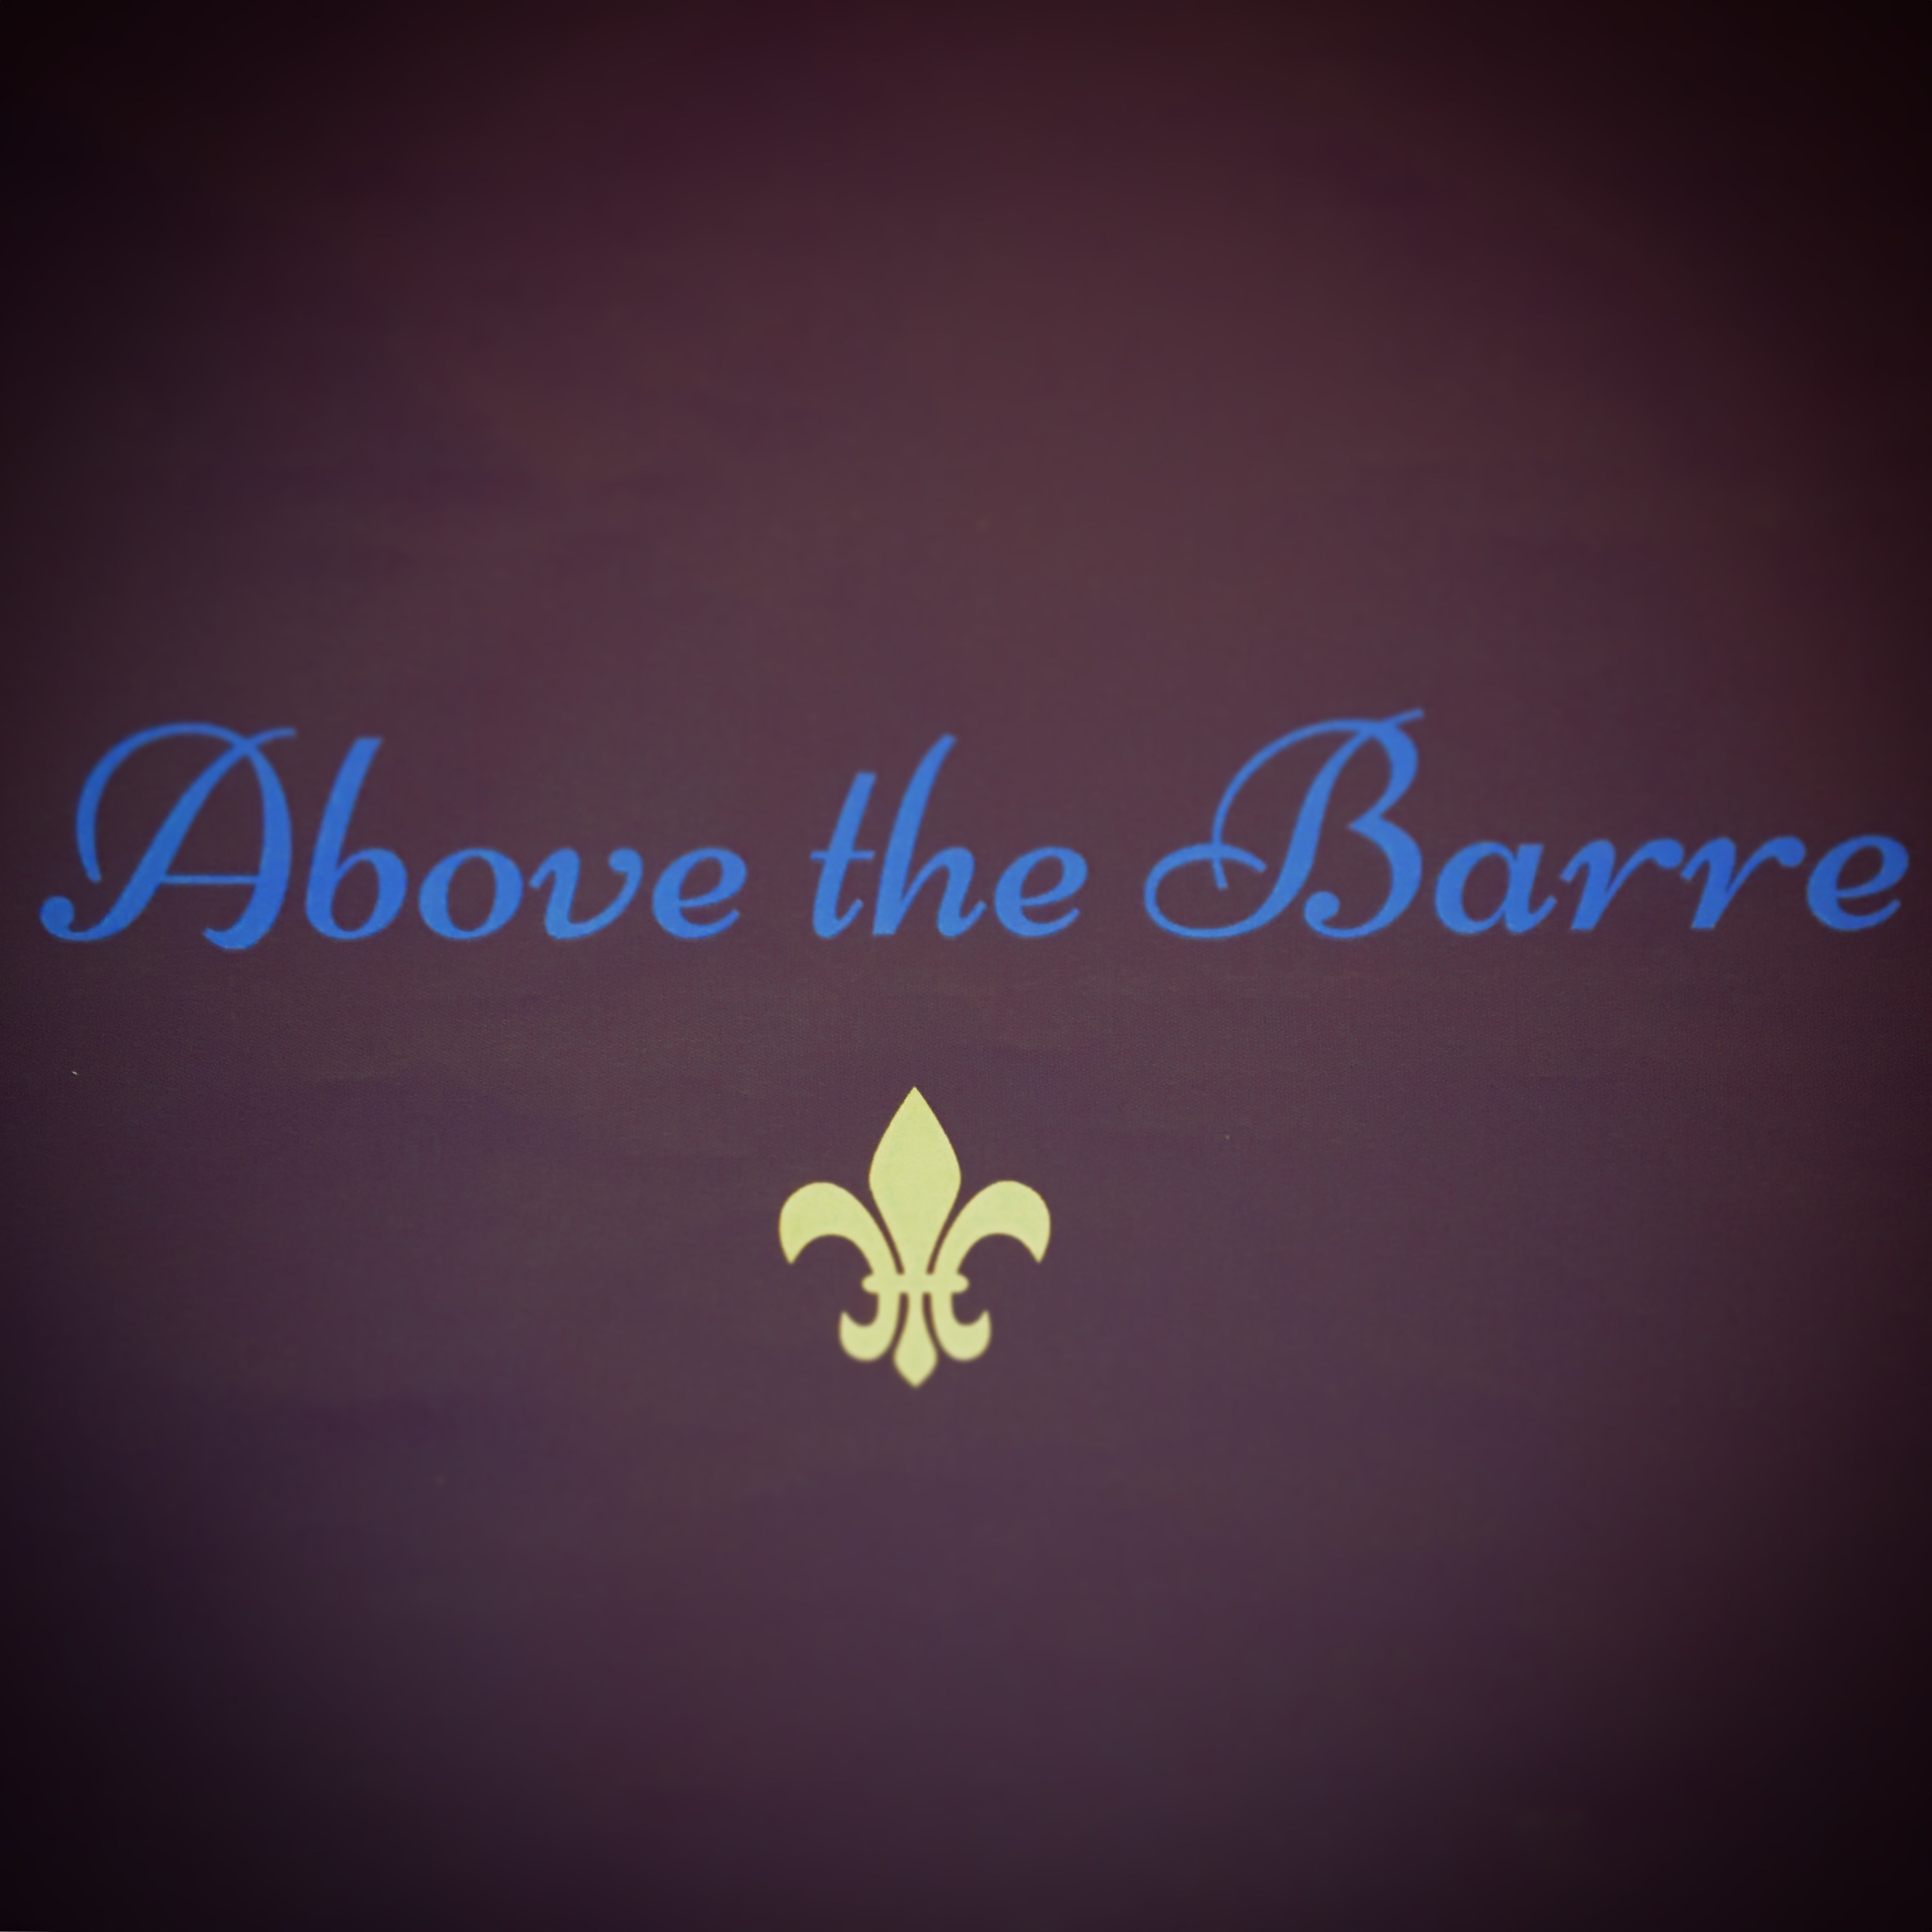 Our Sponsor 'Above the Barre'